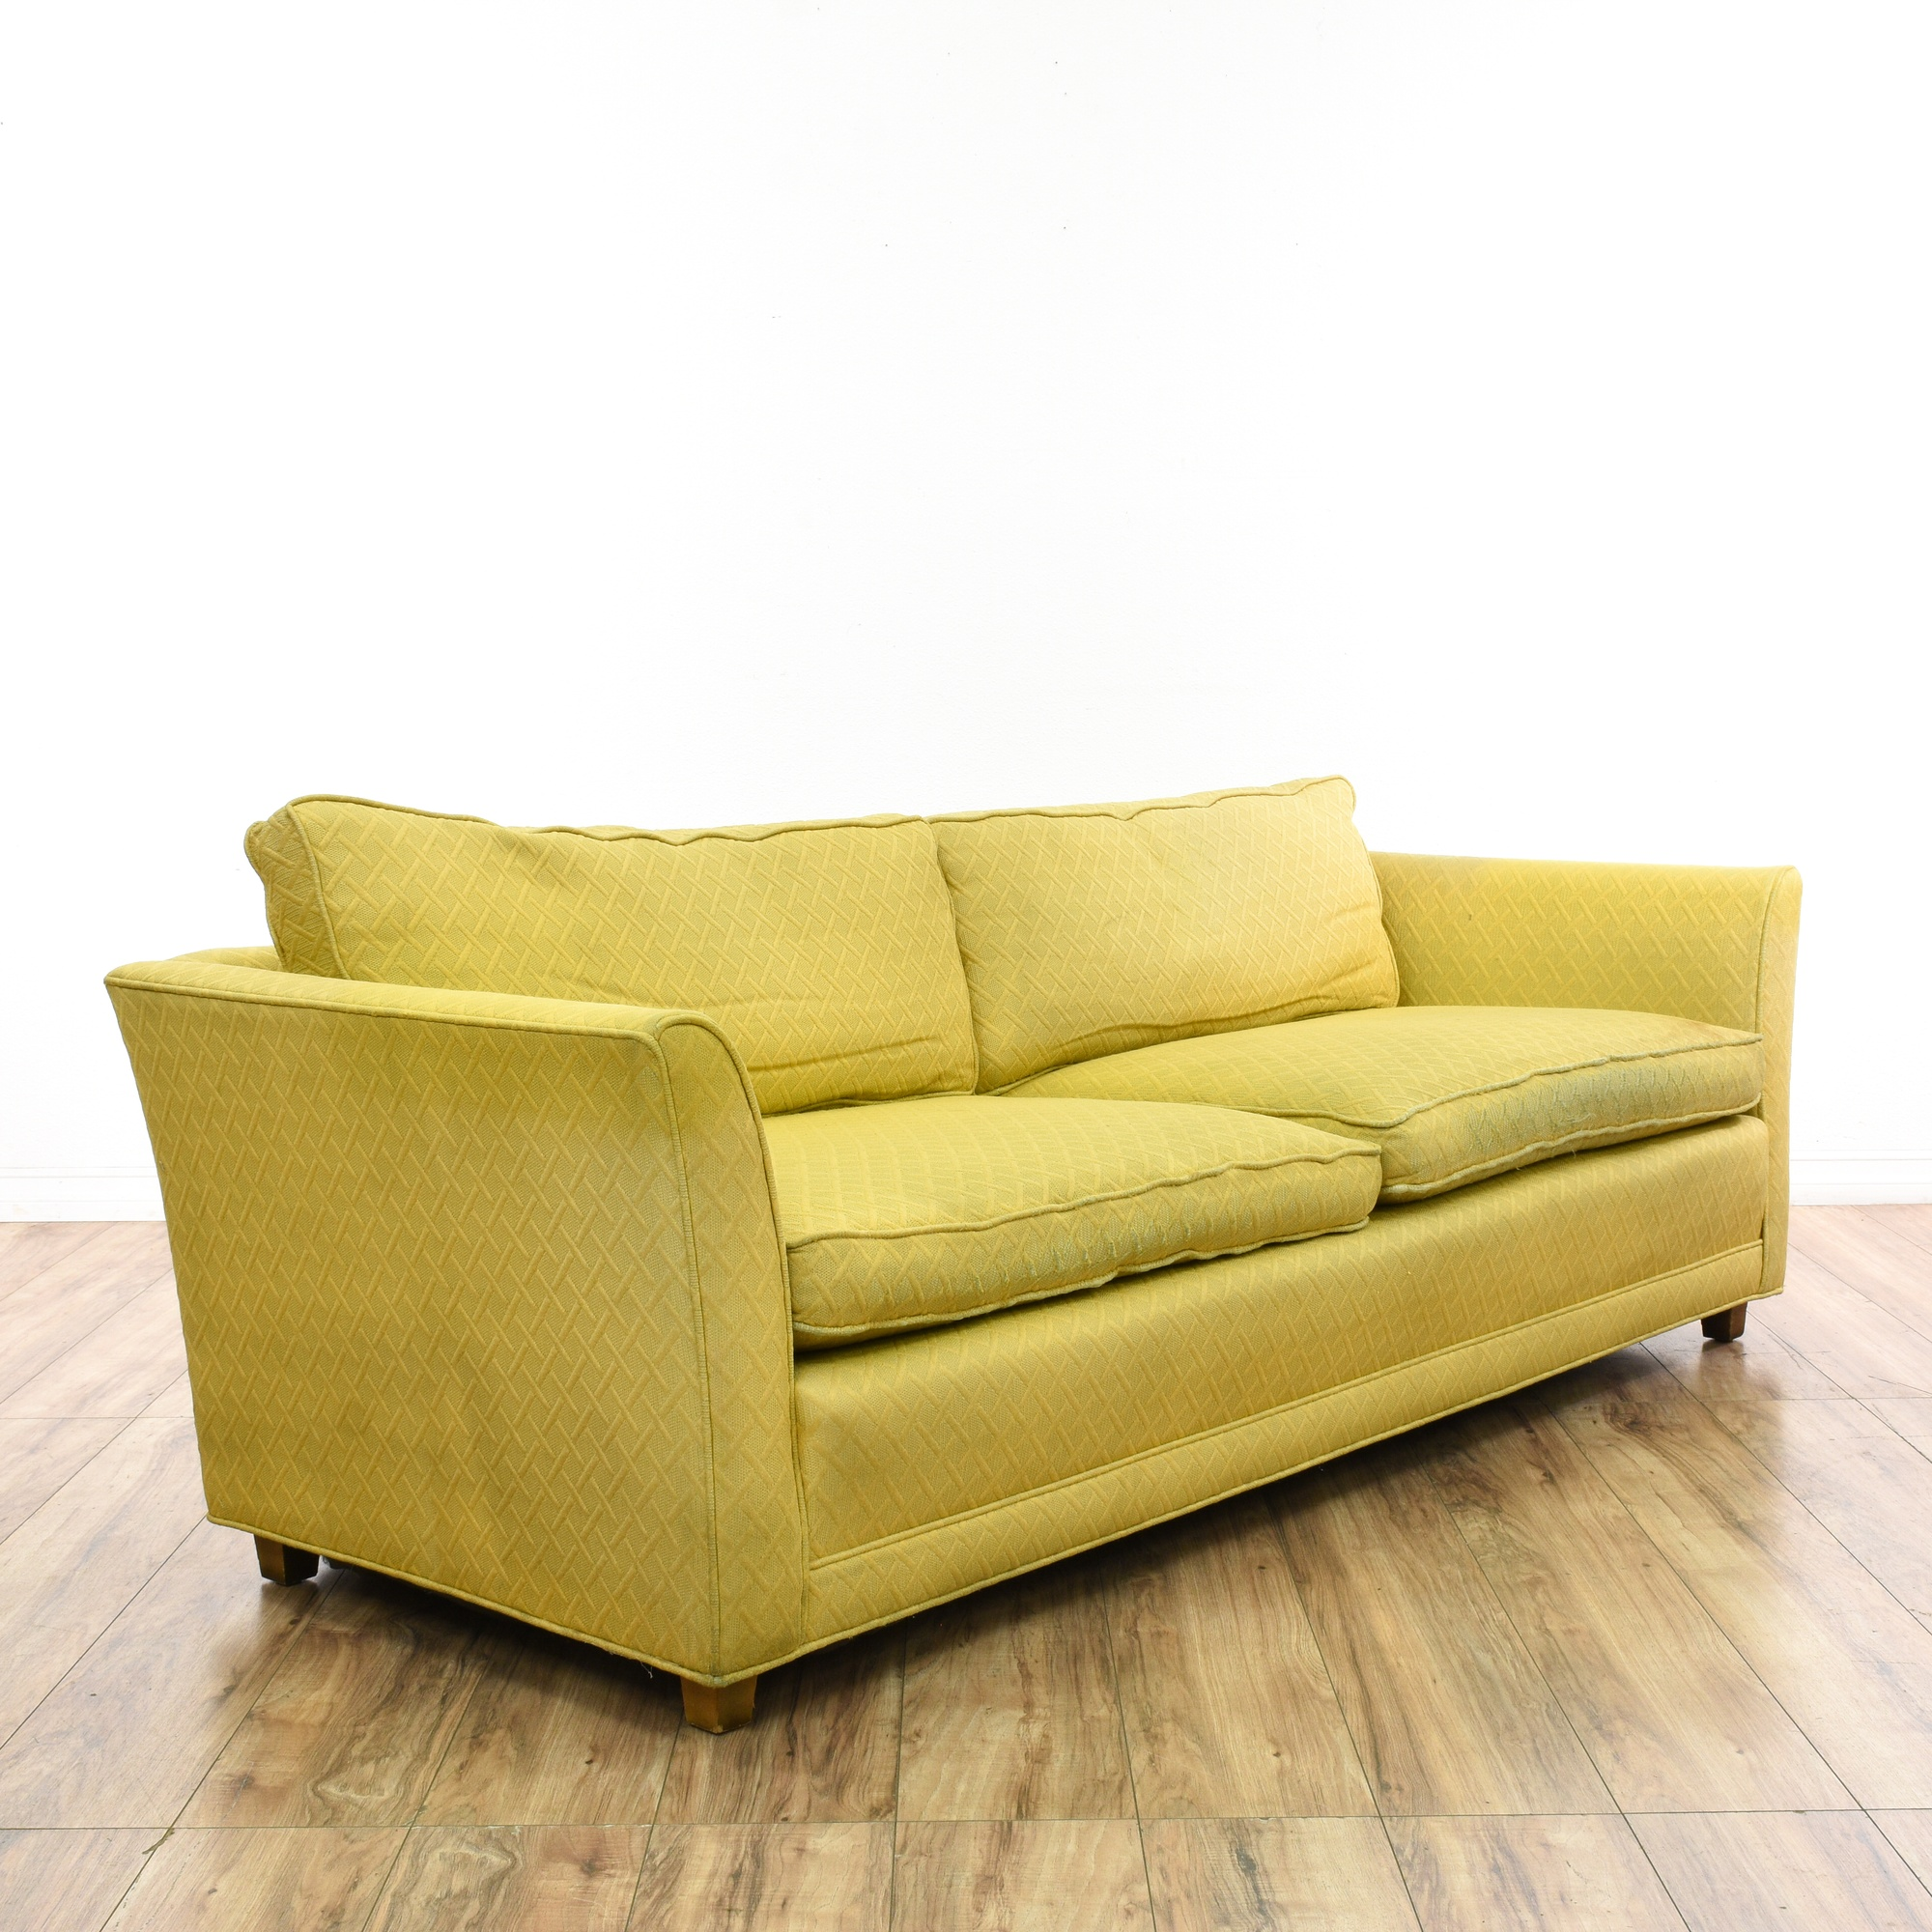 Yellow Upholstered Mid Century Modern Sofa 2